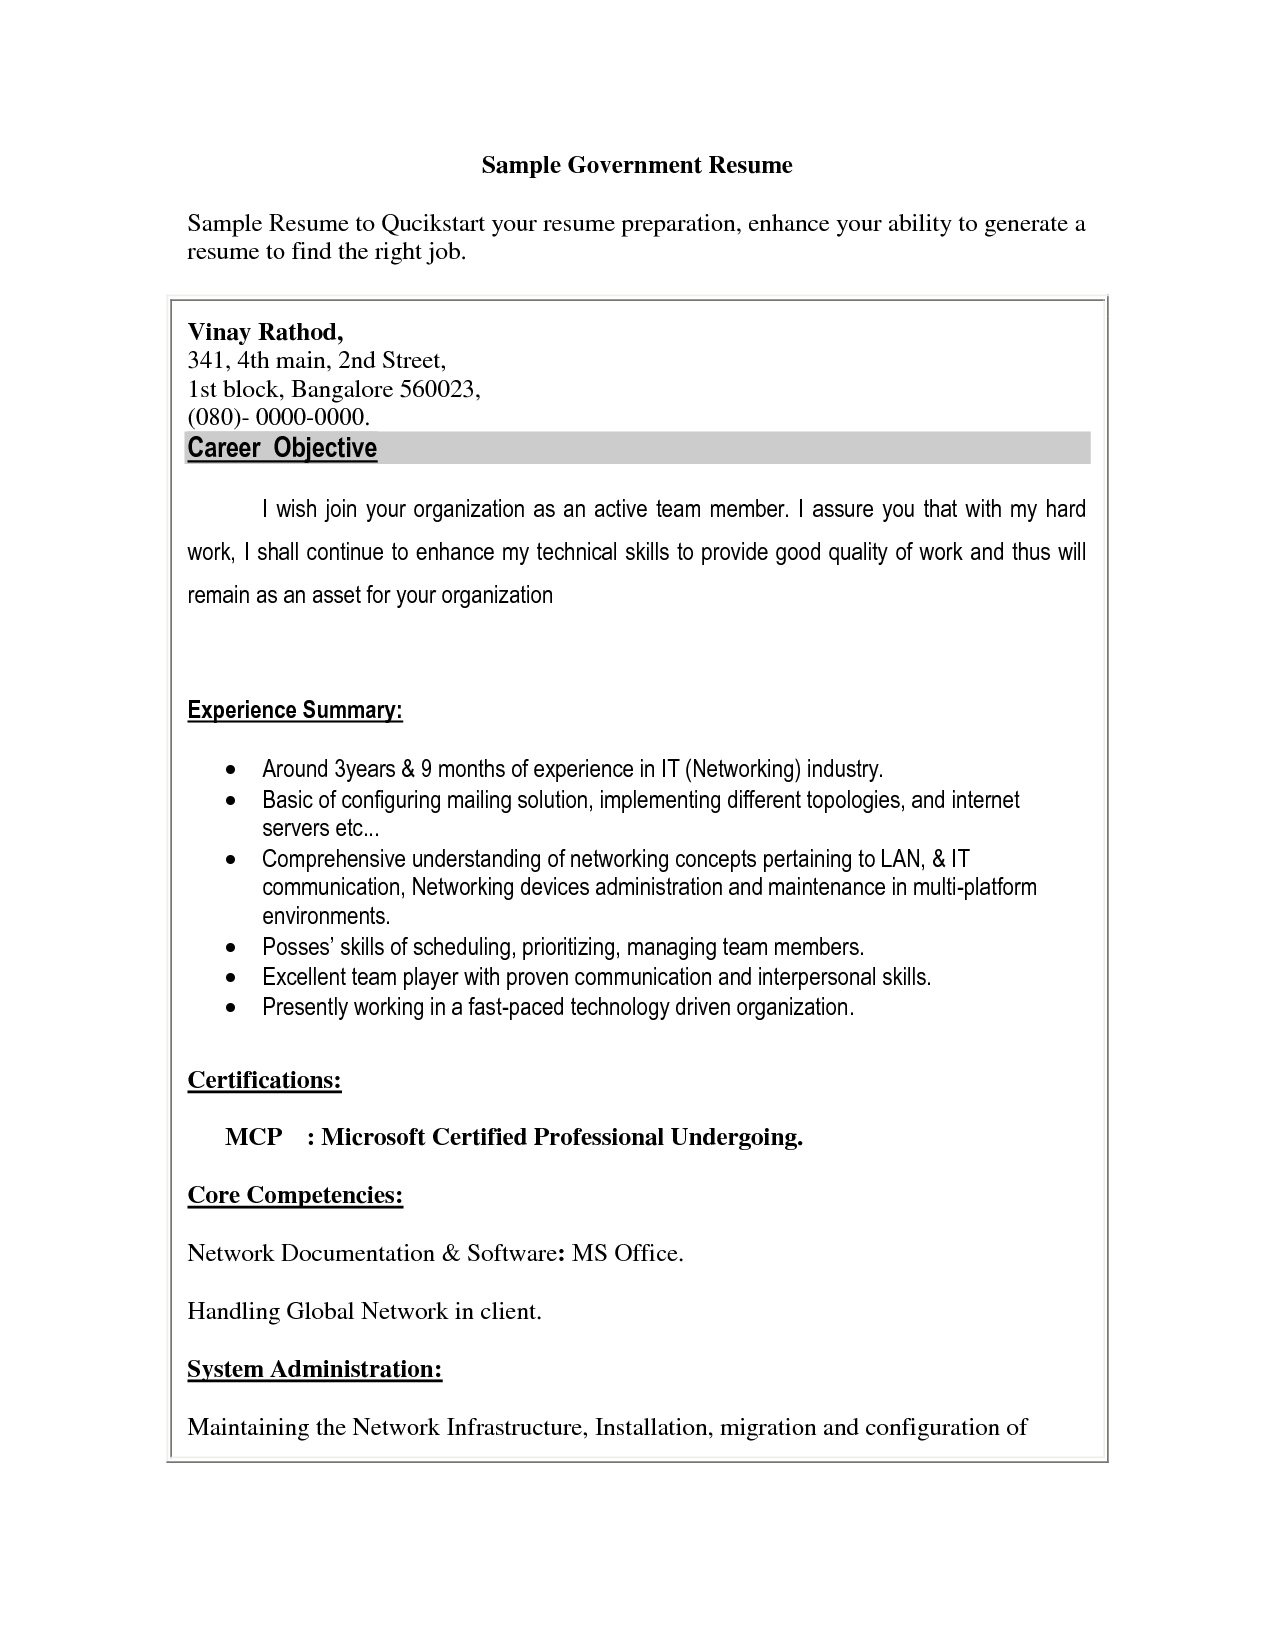 Free Resume Samples For Government Jobs Government Resume